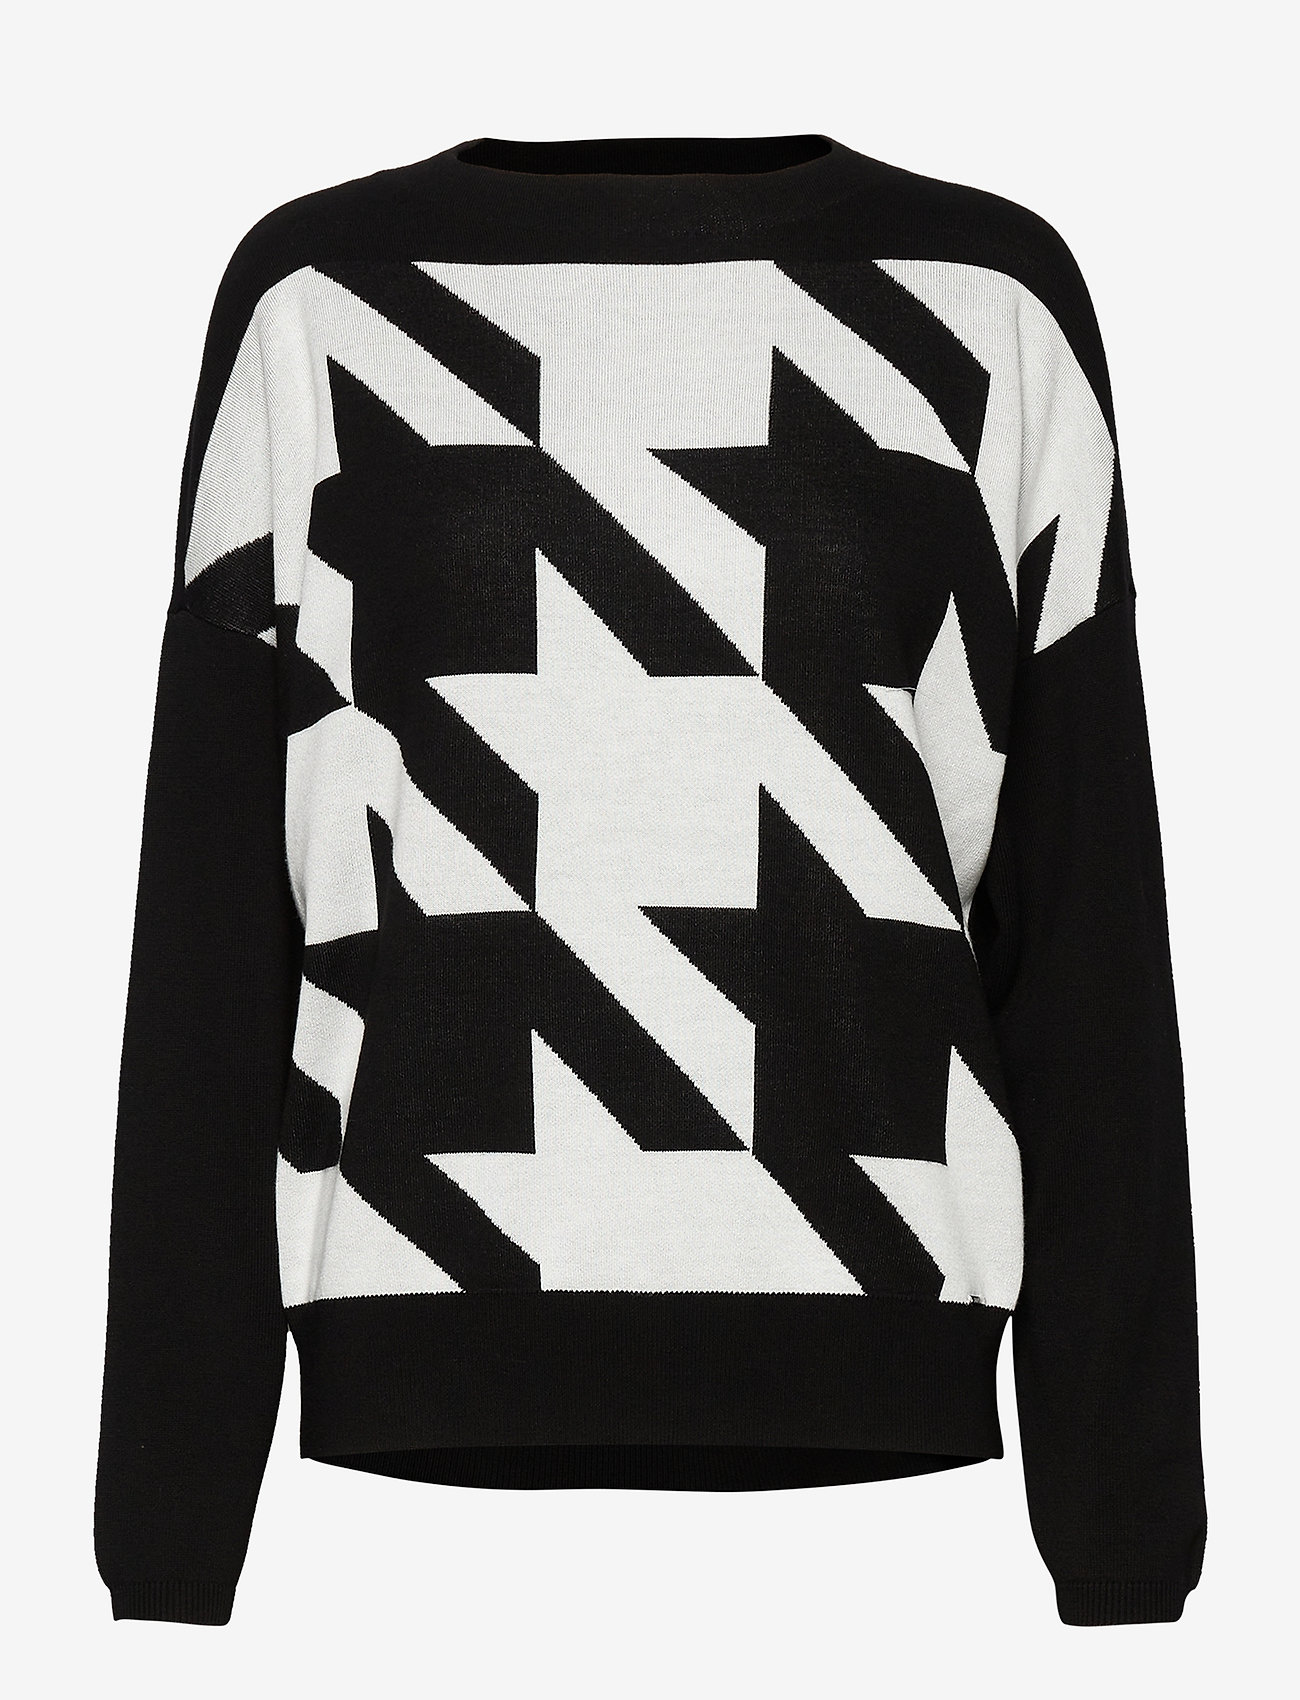 Taifun - PULLOVER LONG-SLEEVE - tröjor - black patterned - 0